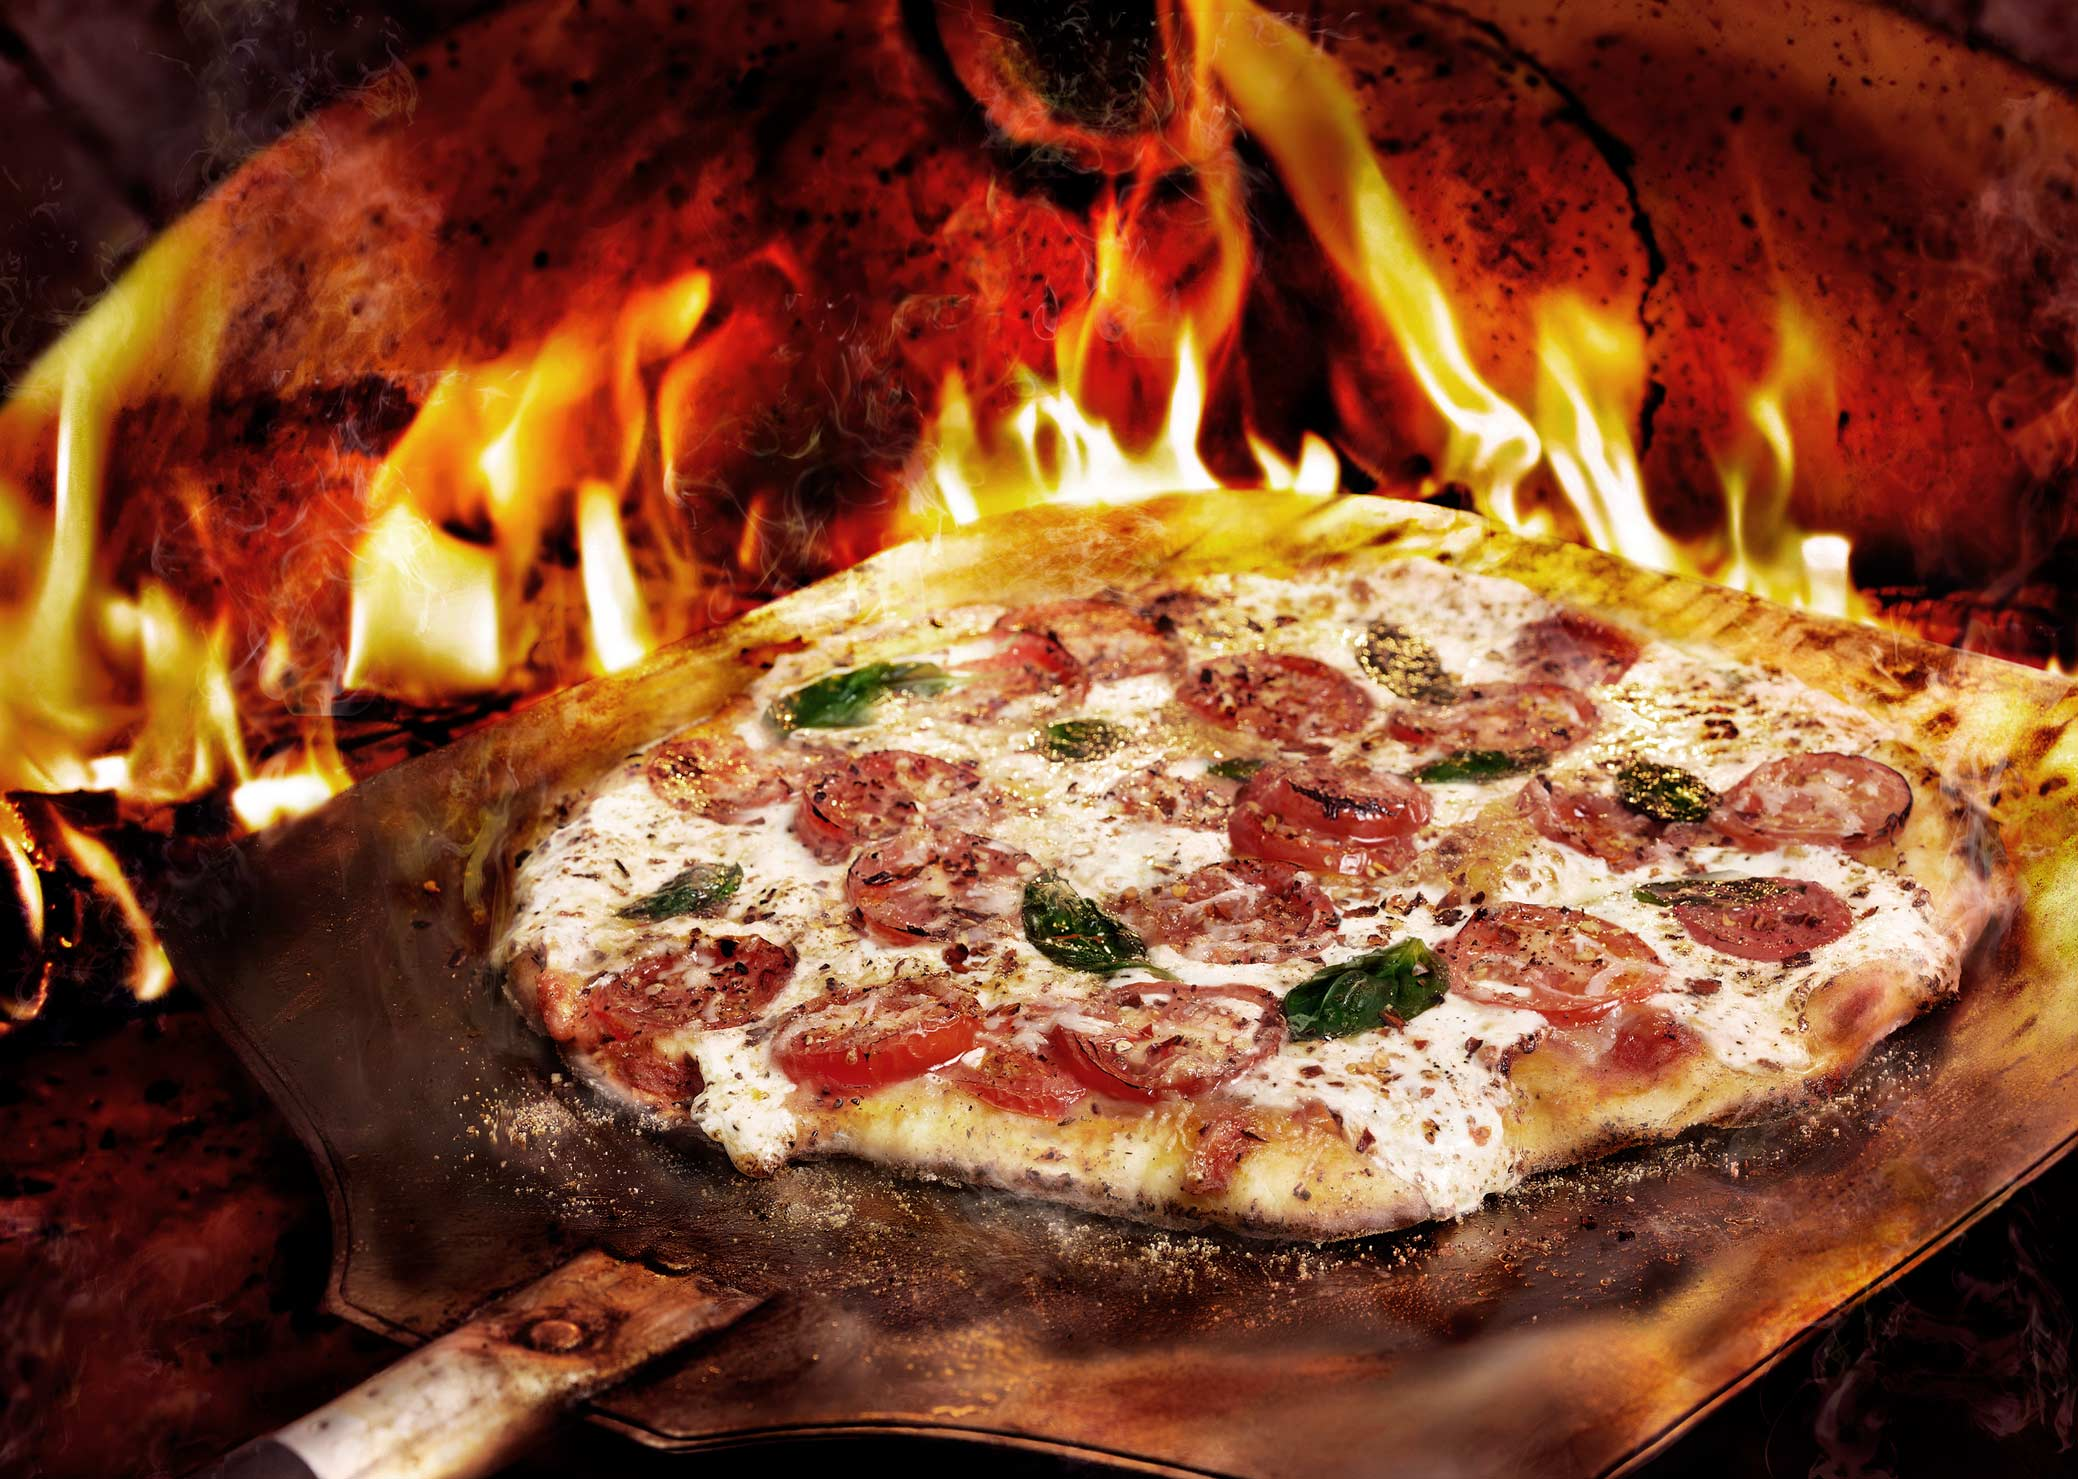 Hot Pizza Margherita in wood-fired oven with flames